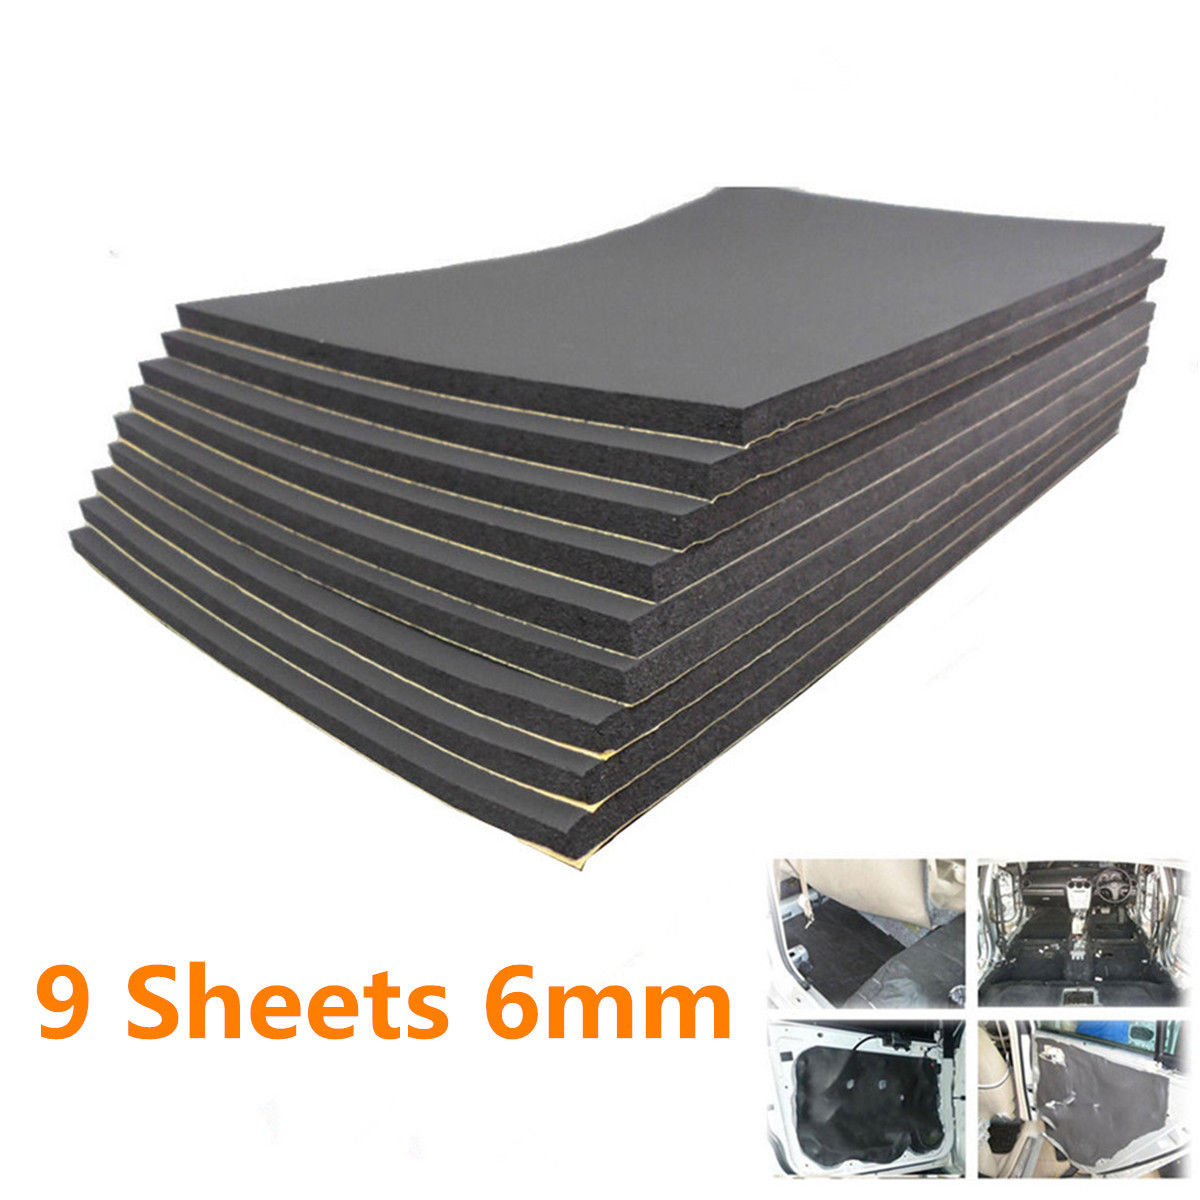 9pcs Car Van Sound Proofing Deadening Insulation Foam New 30cm*50cm*6mm Protector Auto Sound Insulation Deadening Accessories image